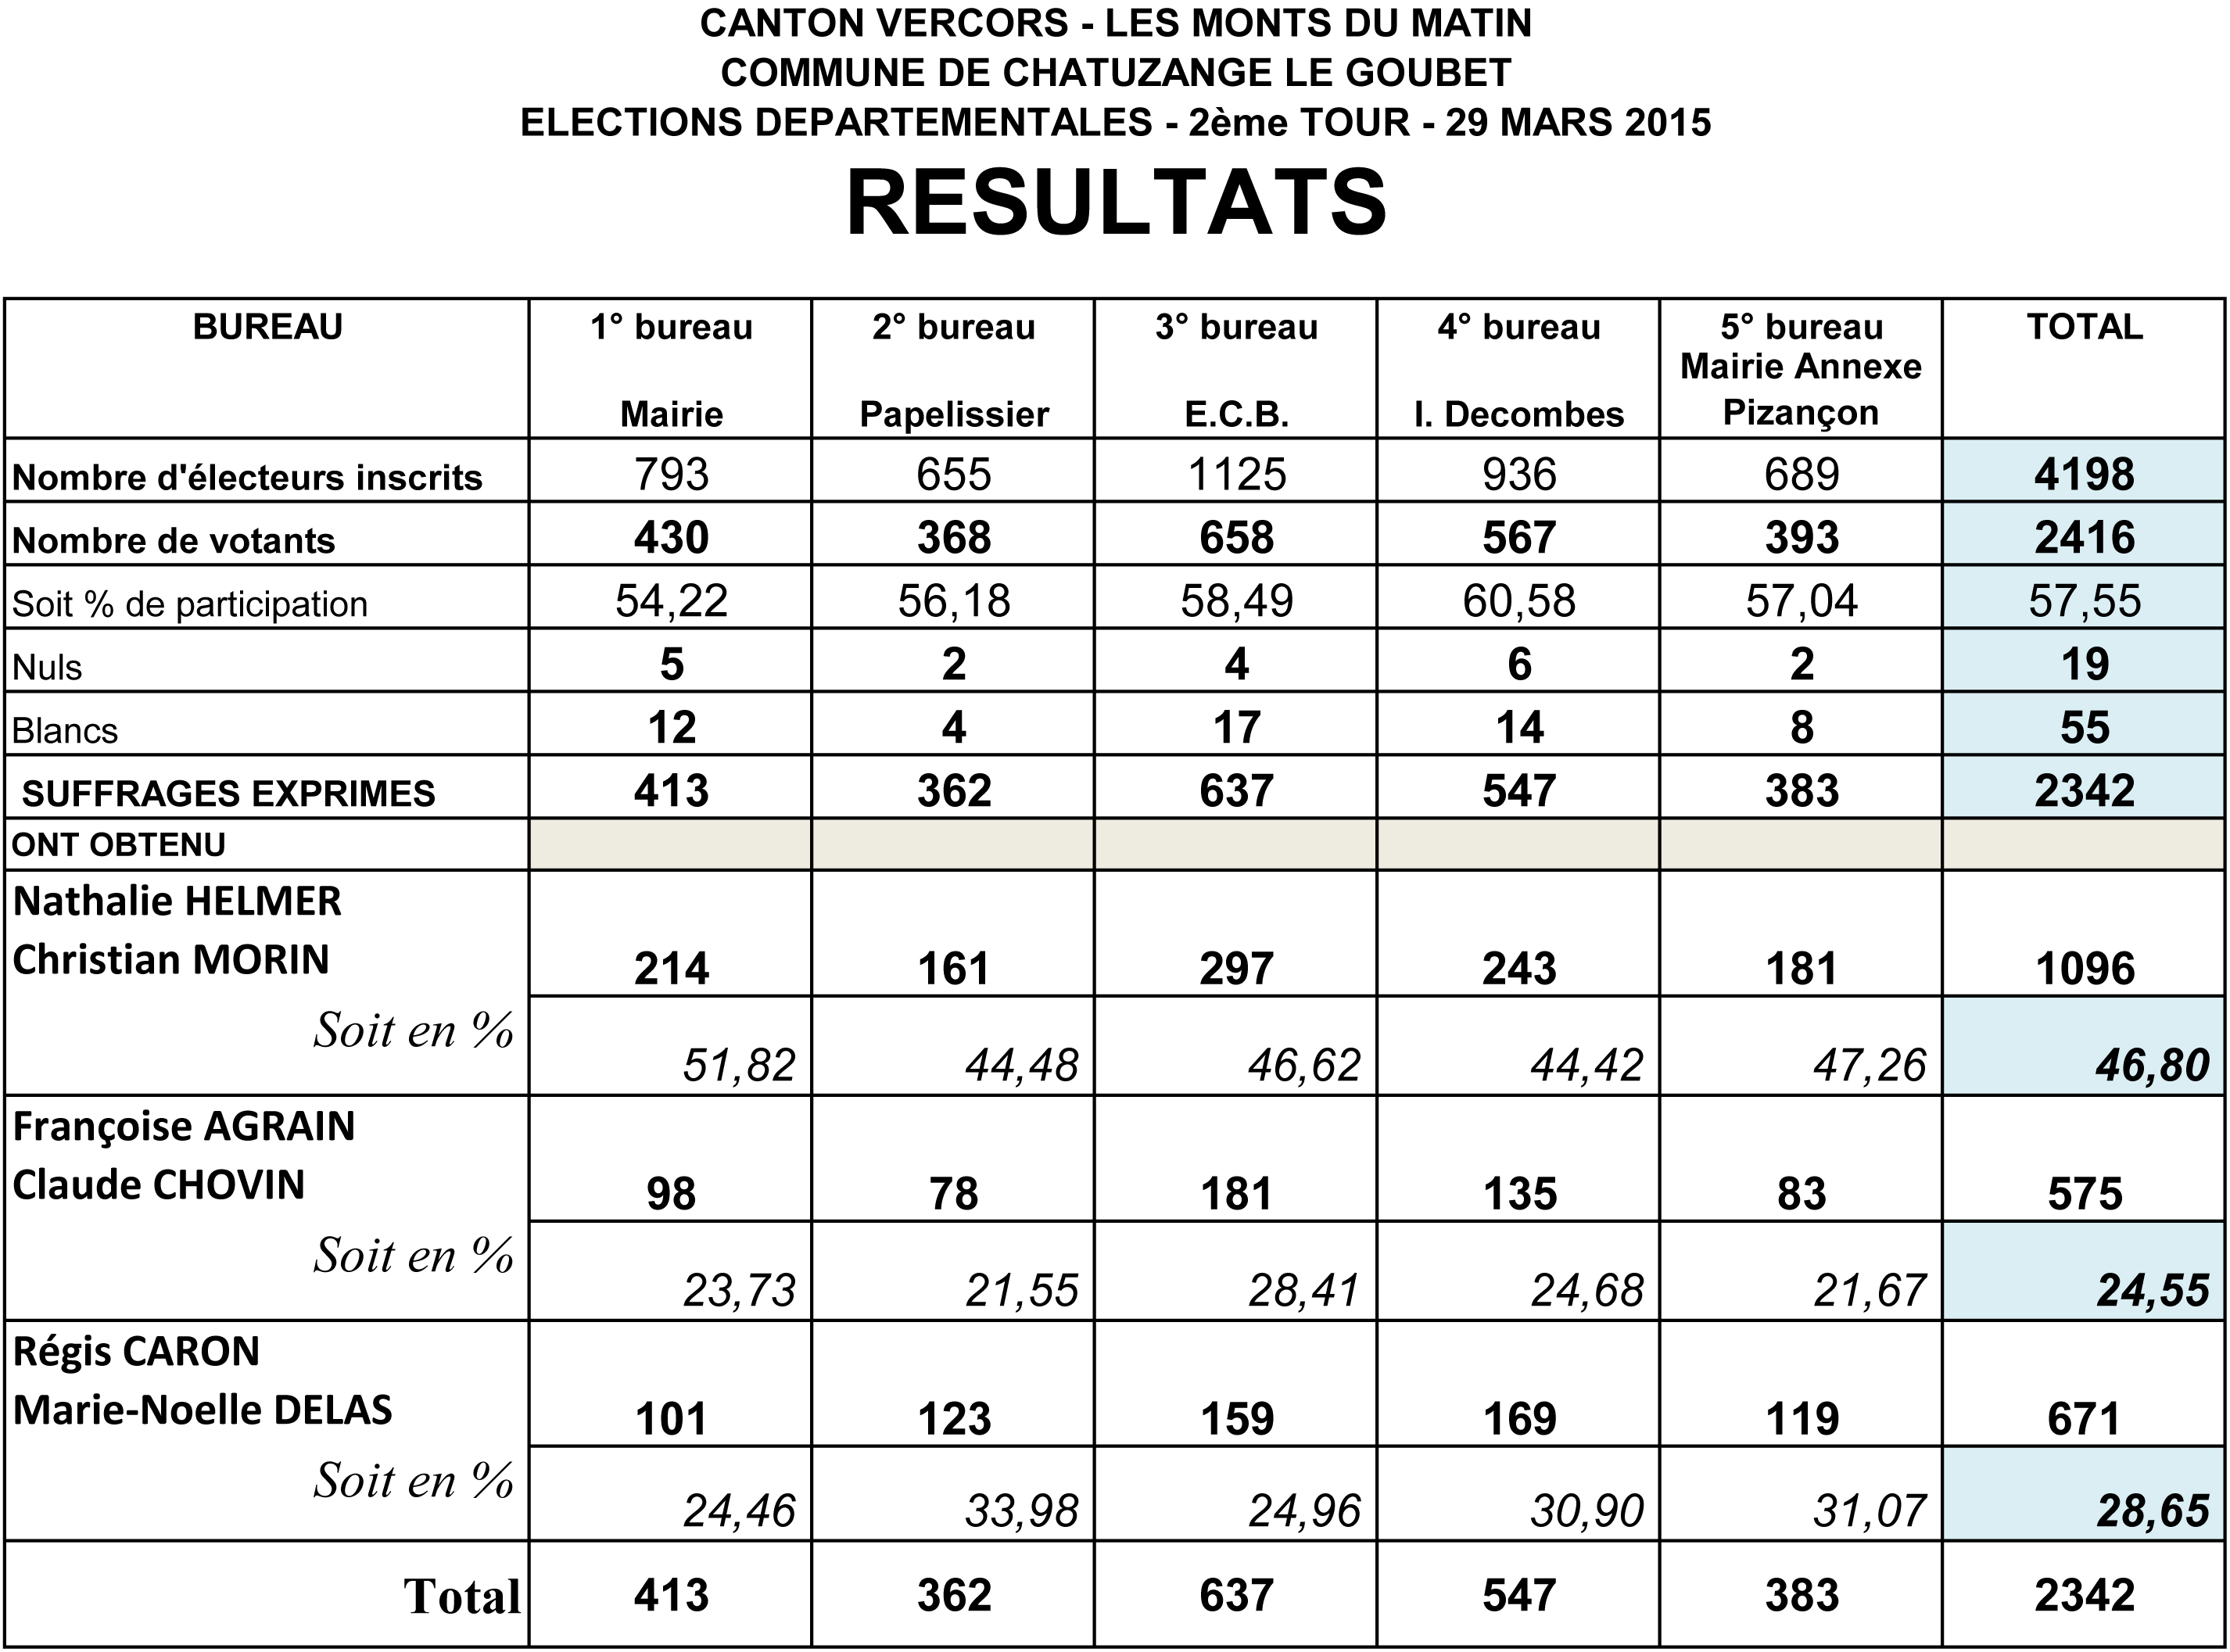 RESULTATS ELECTIONS DEPARTEMENTALES 2nd TOUR